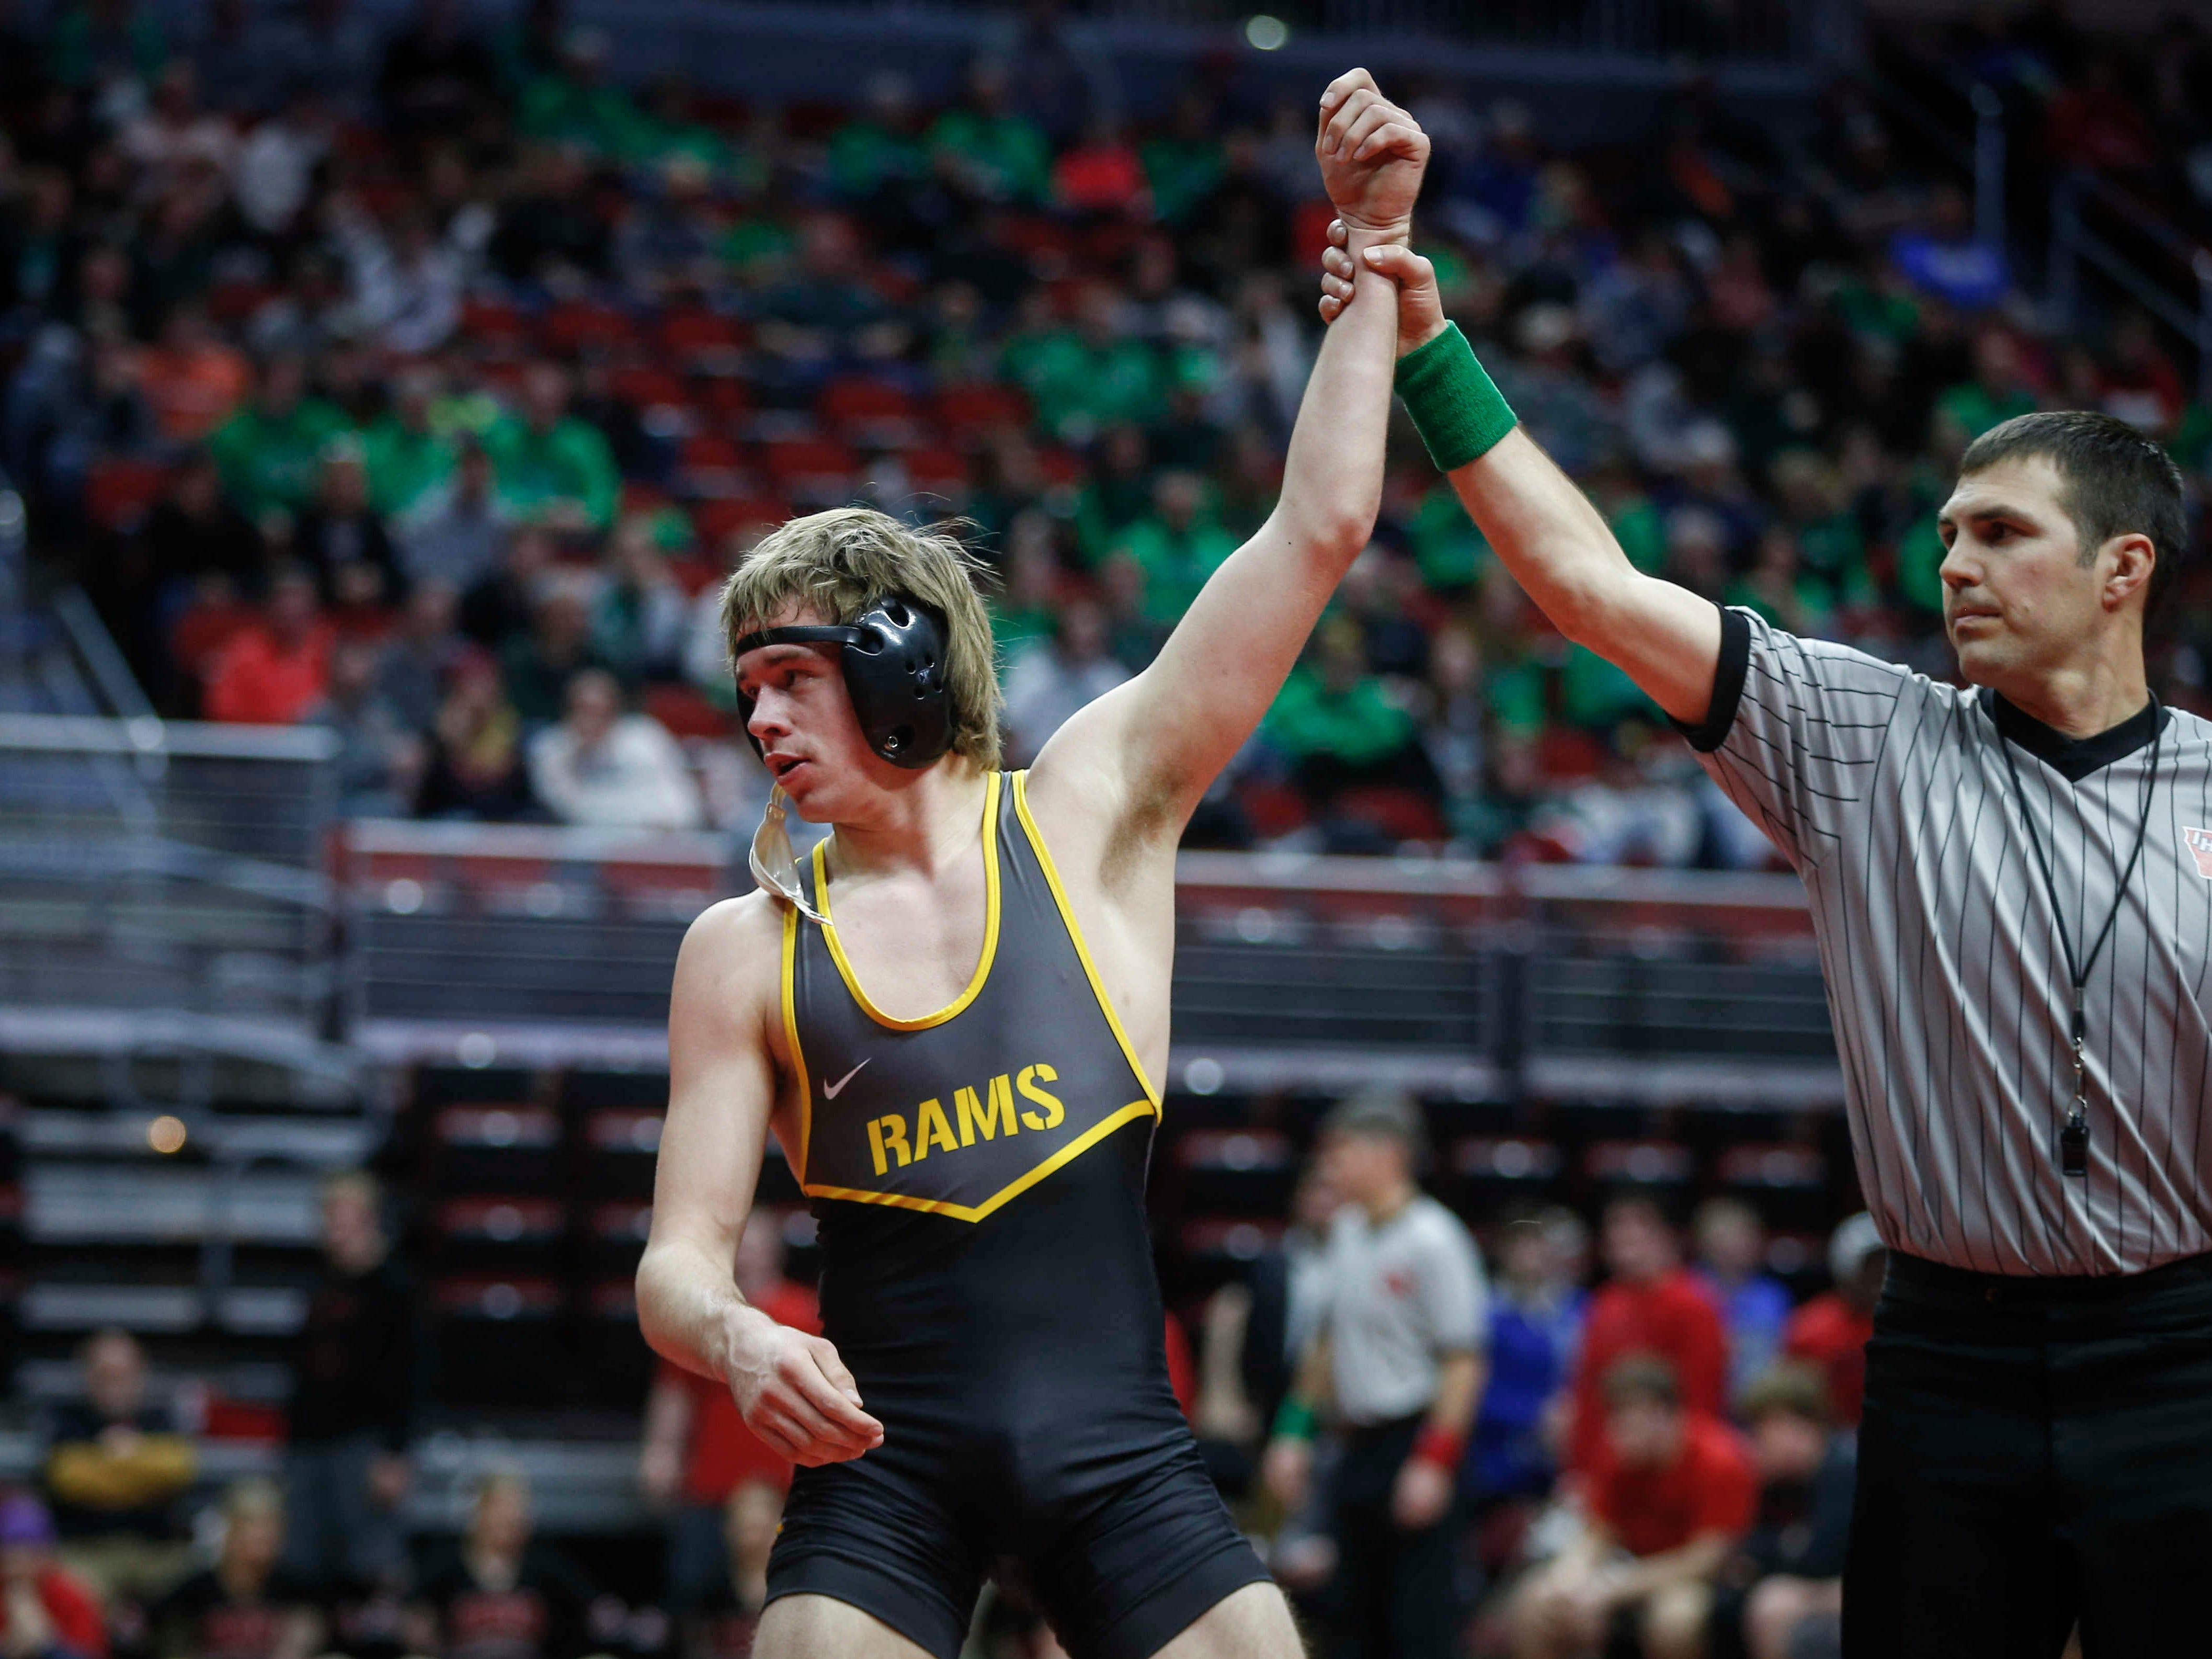 Southeast Polk's Camden Baarda beat Waverly-Shell Rock's Cayden Langreck at 145 pounds during the 2019 Iowa high school dual wrestling state tournament on Wednesday, Feb. 13, 2019, at Wells Fargo Arena in Des Moines.